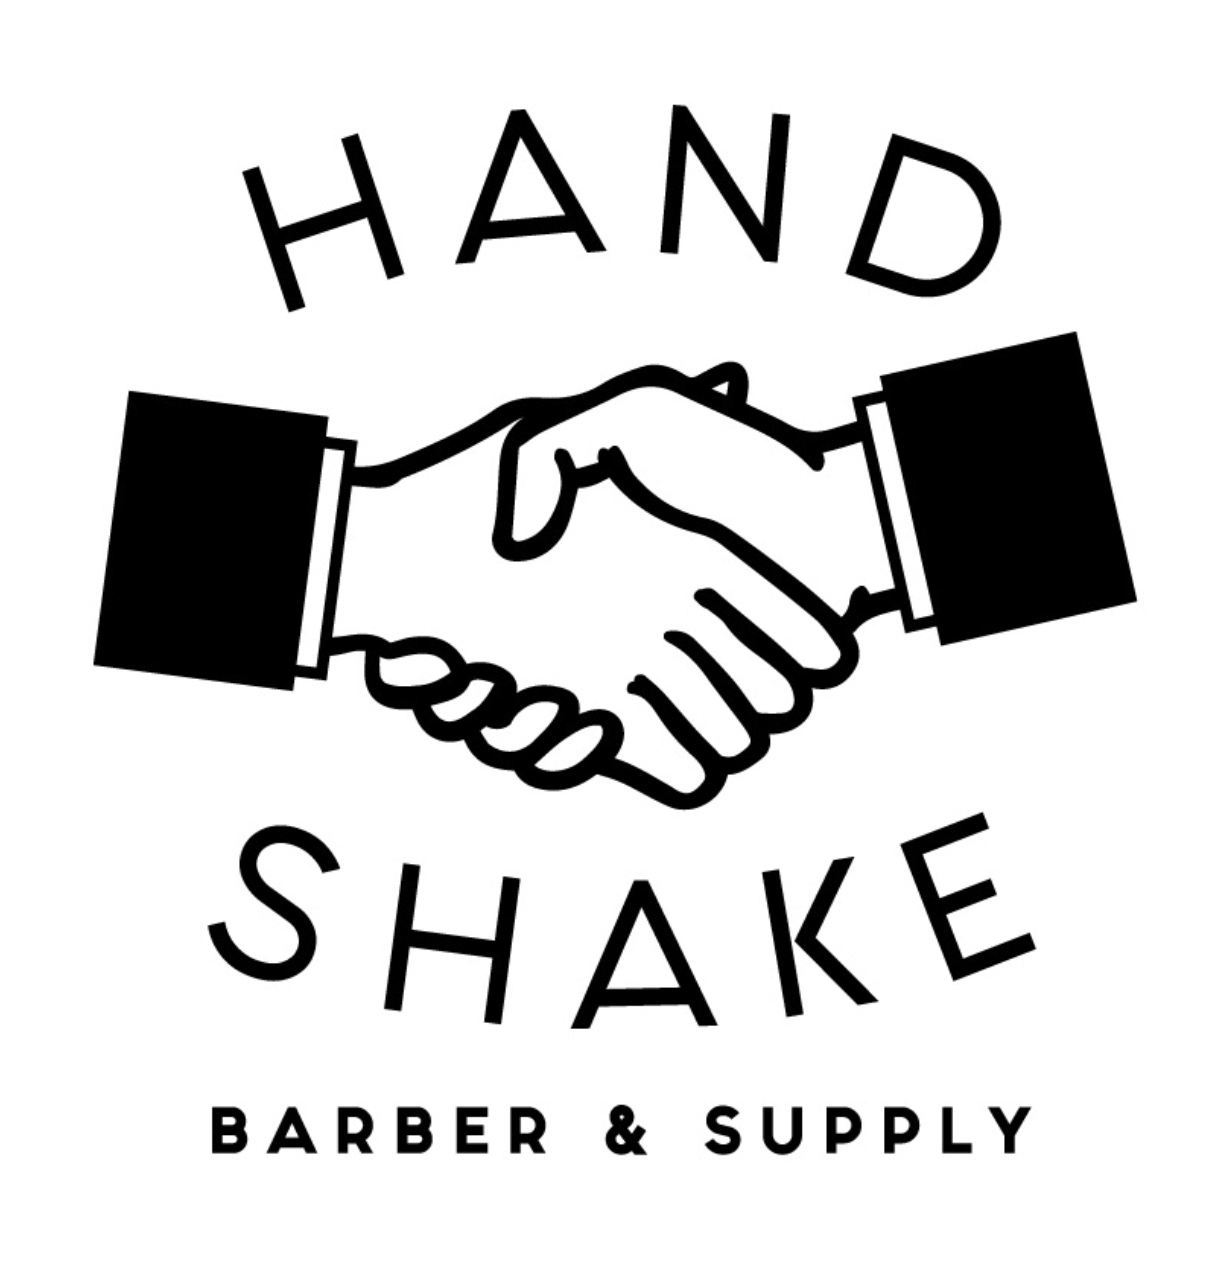 Handshake Barber & Supply